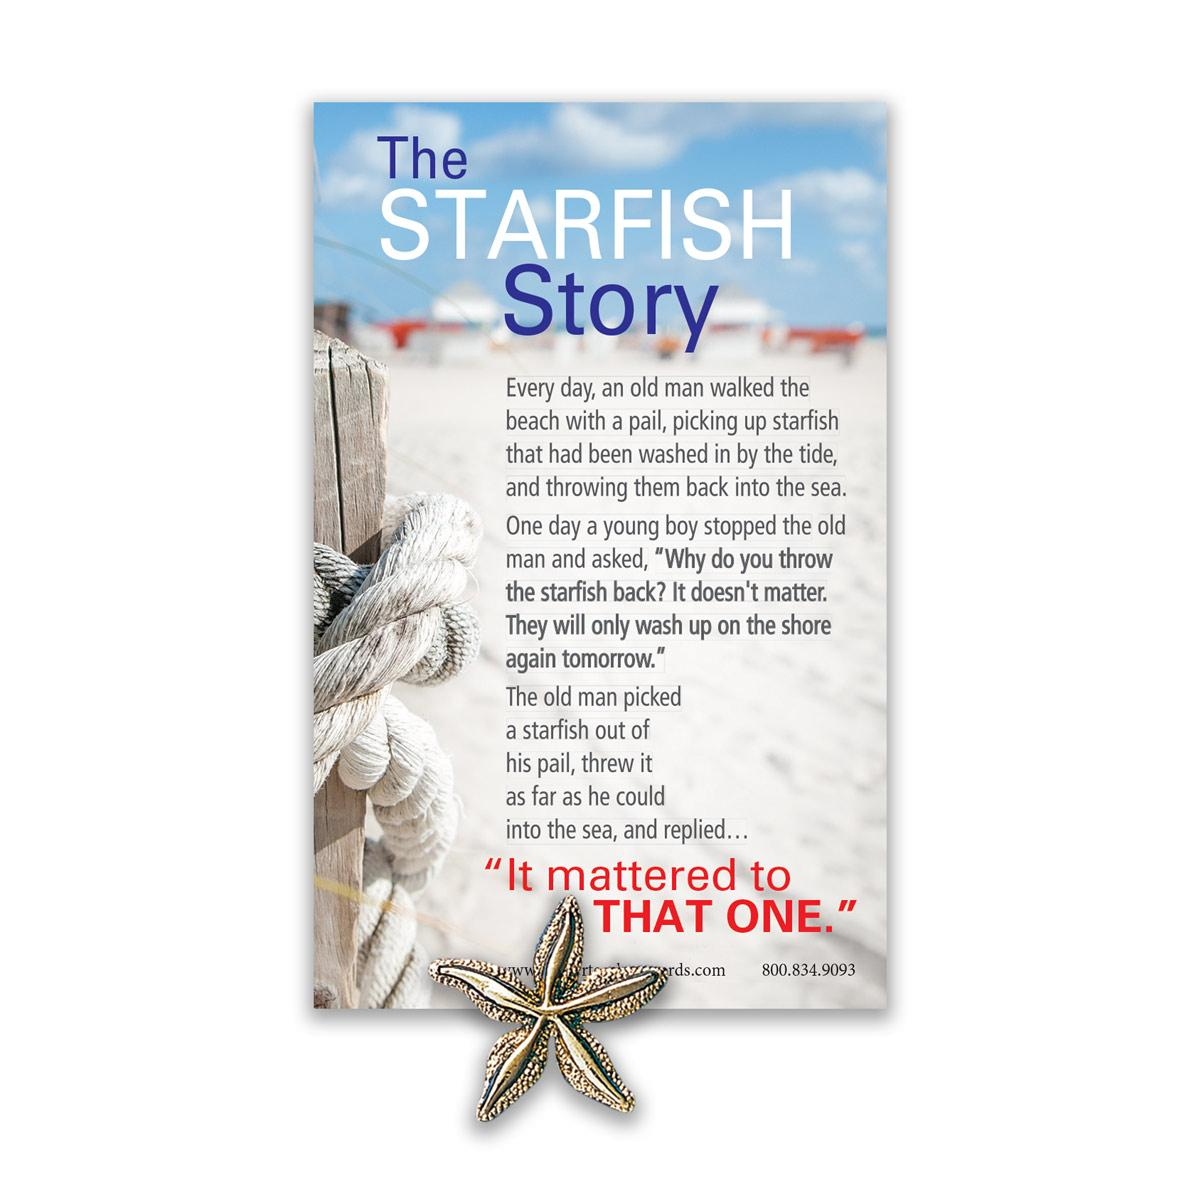 photo relating to Starfish Story Printable identify The Starfish Tale Lapel Pin